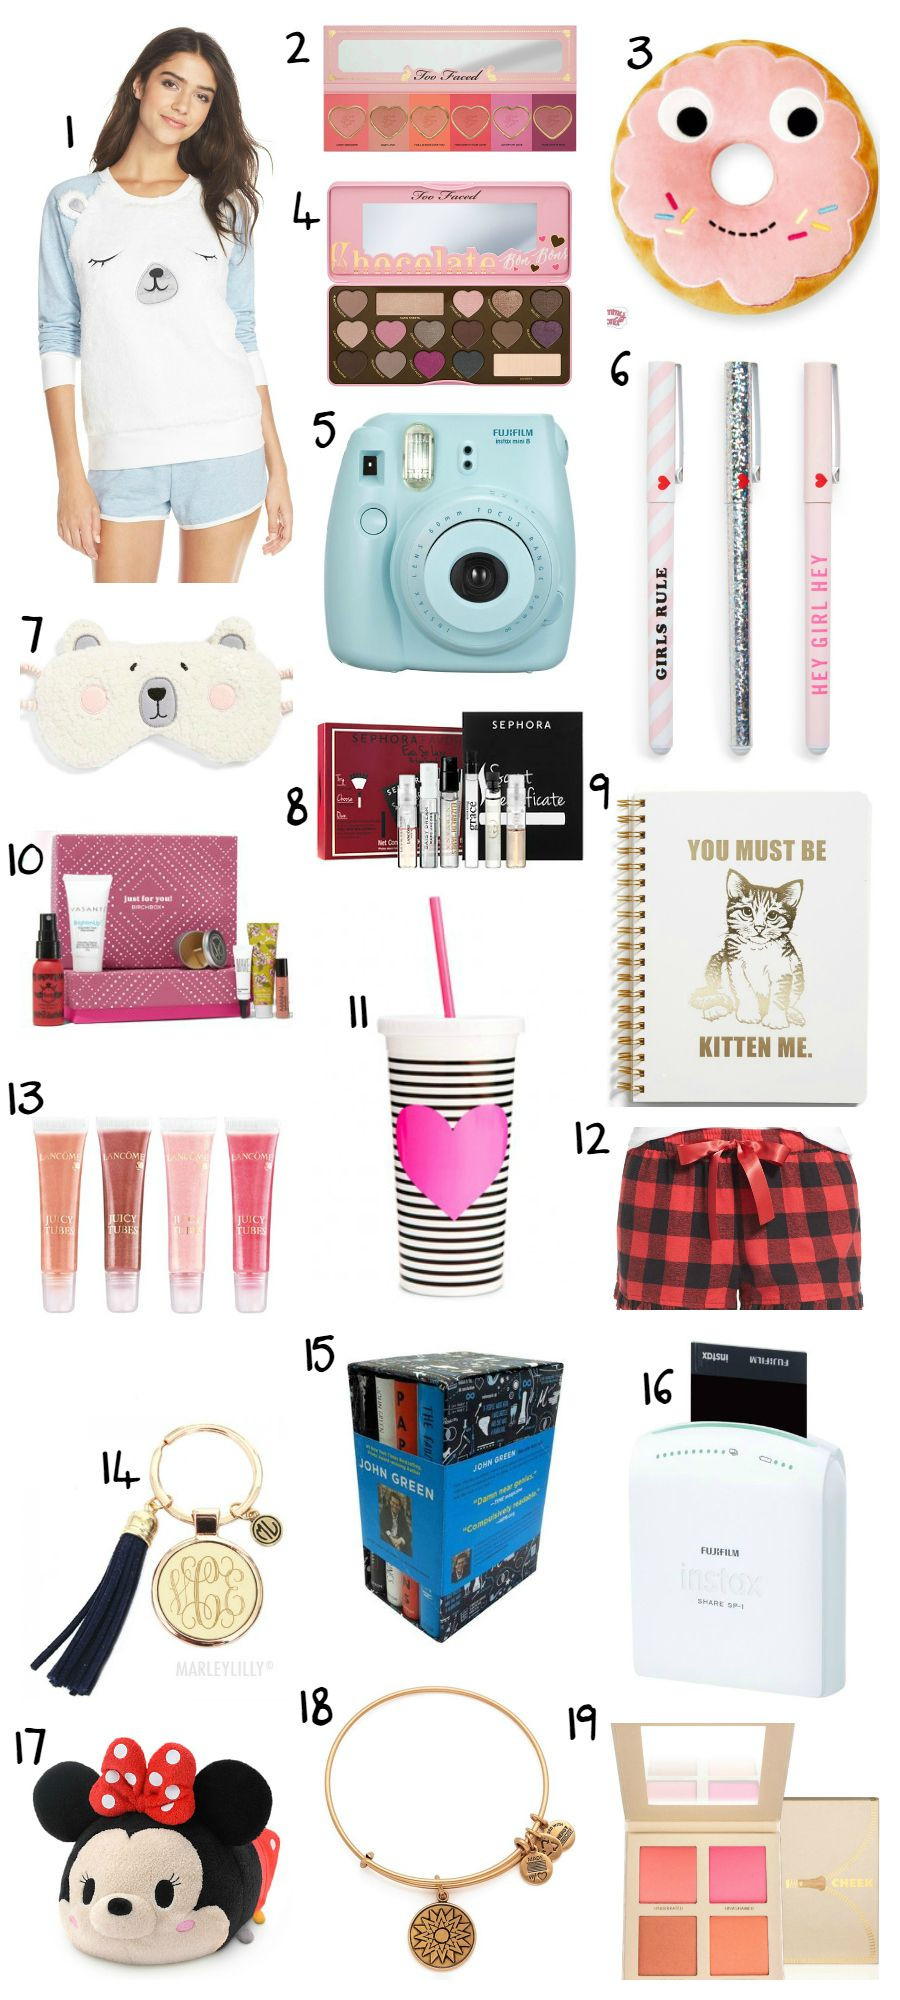 Amazing Gift Ideas For Girlfriend  The Best Christmas Gift Ideas for Teens